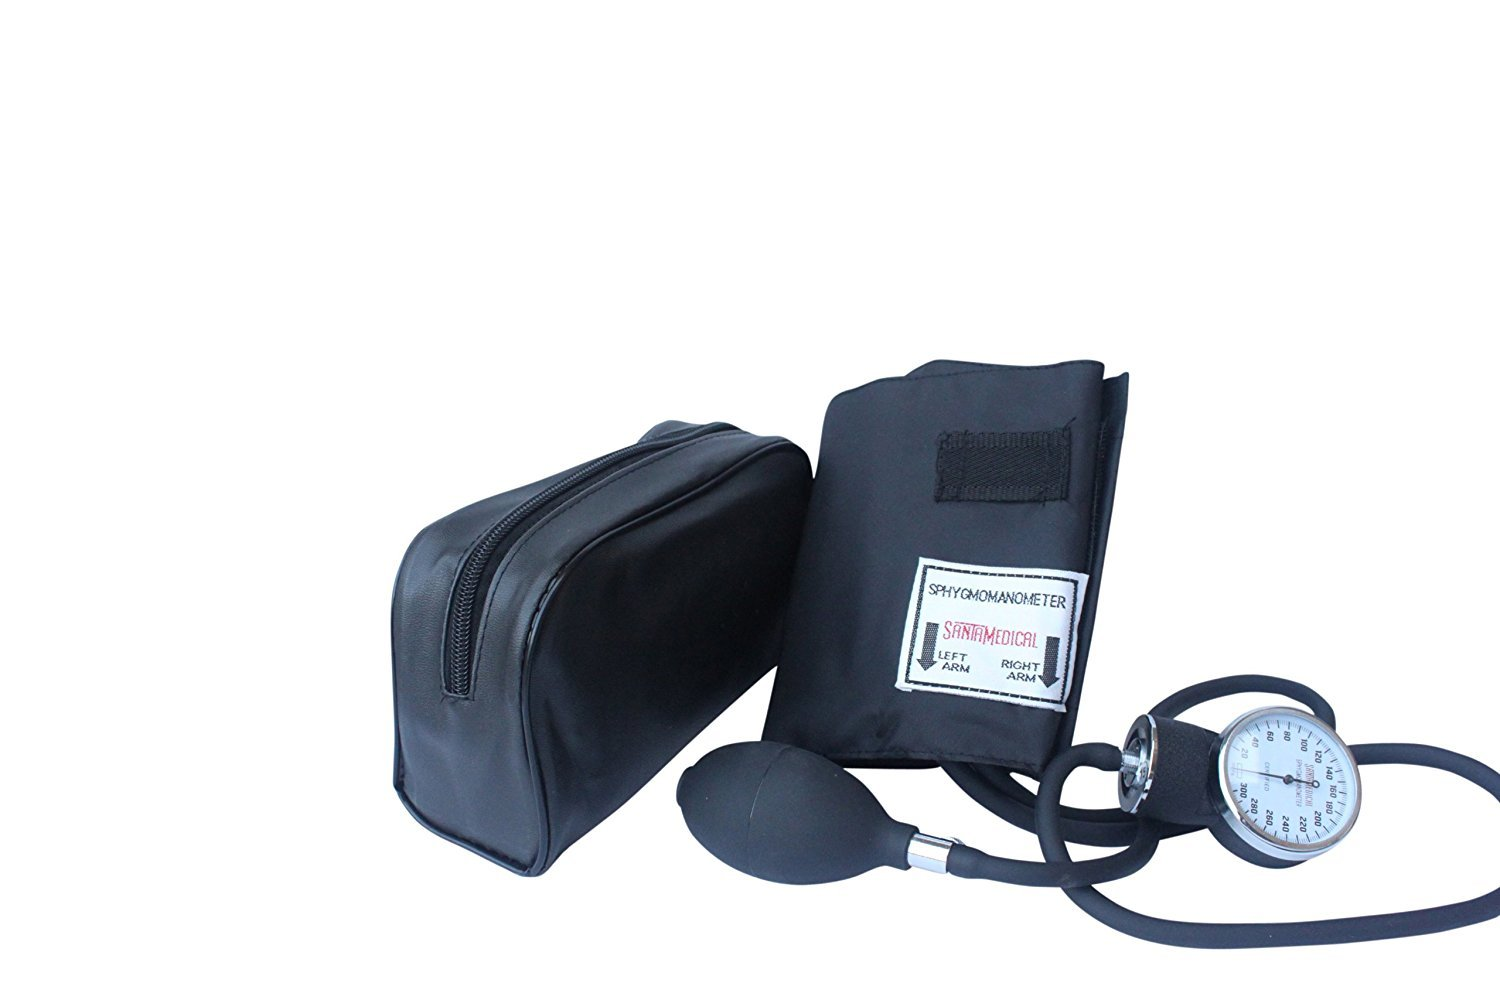 Santamedical Adult Deluxe Aneroid Sphygmomanometer - Professional Blood Pressure Monitor with Adult black cuff and Carrying case